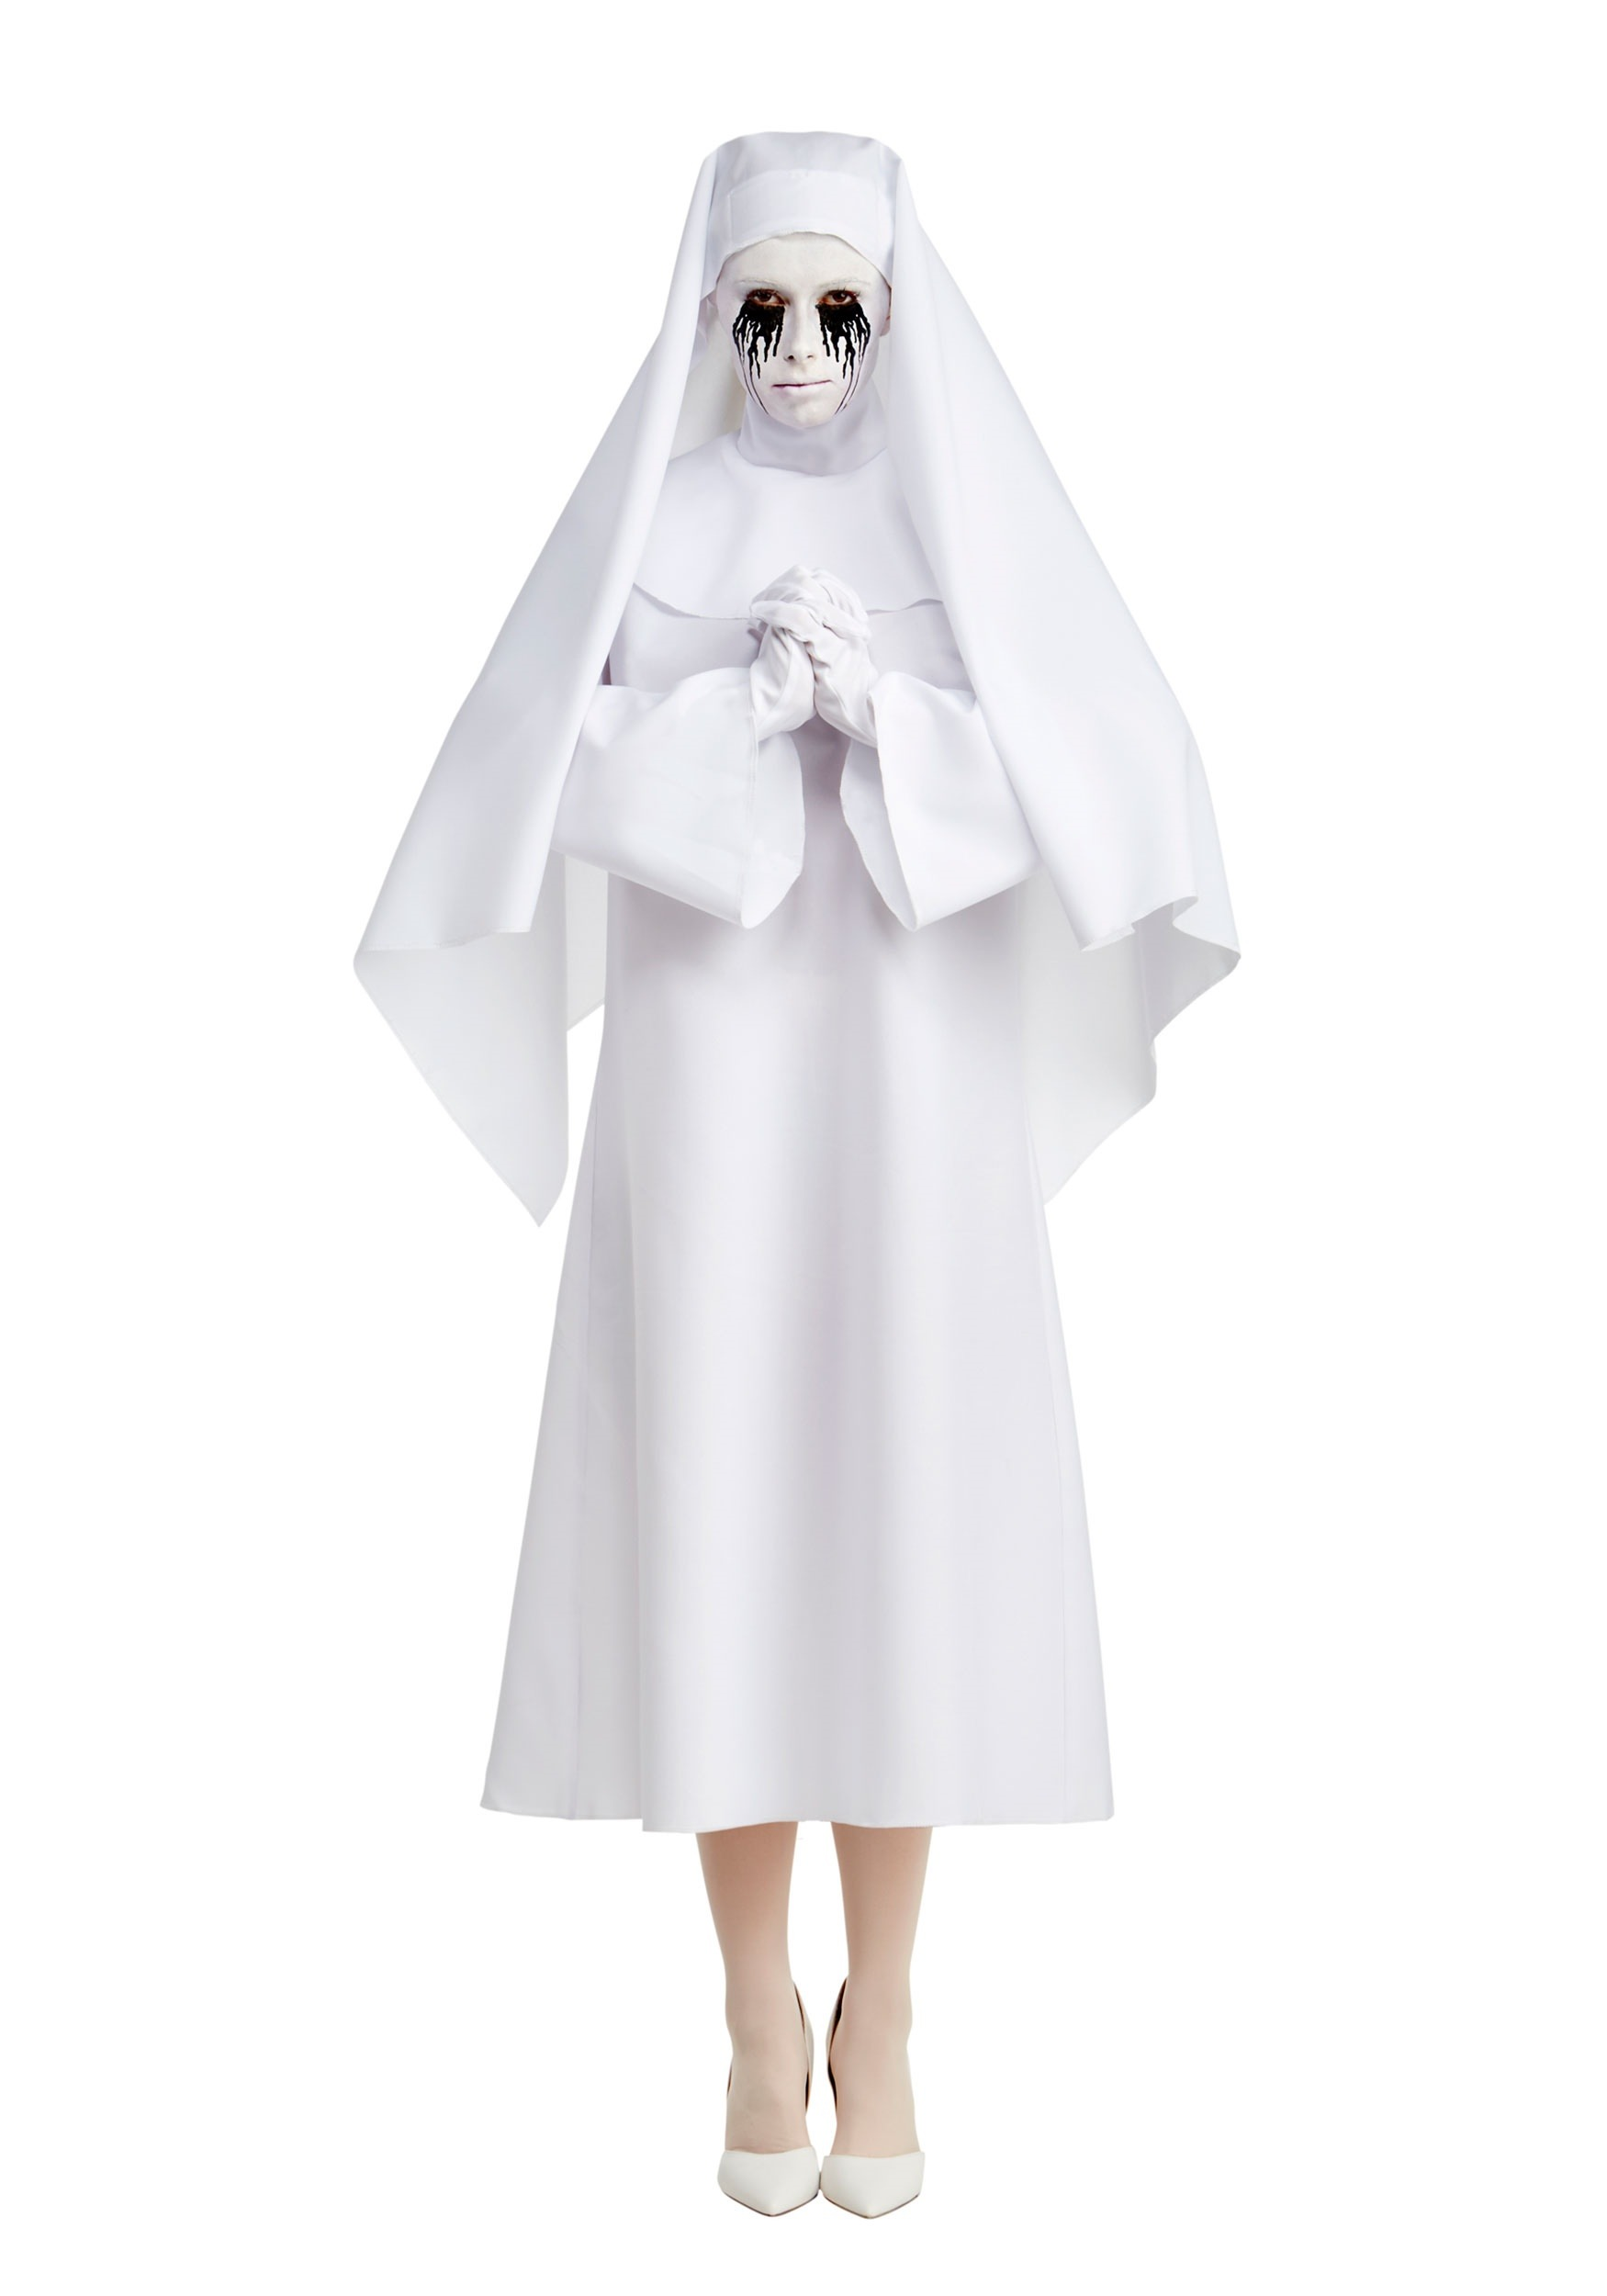 American Horror Story The White Nun Deluxe Womens Costume  sc 1 st  Halloween Costumes UK & American Horror Story The White Nun Deluxe Costume for Women